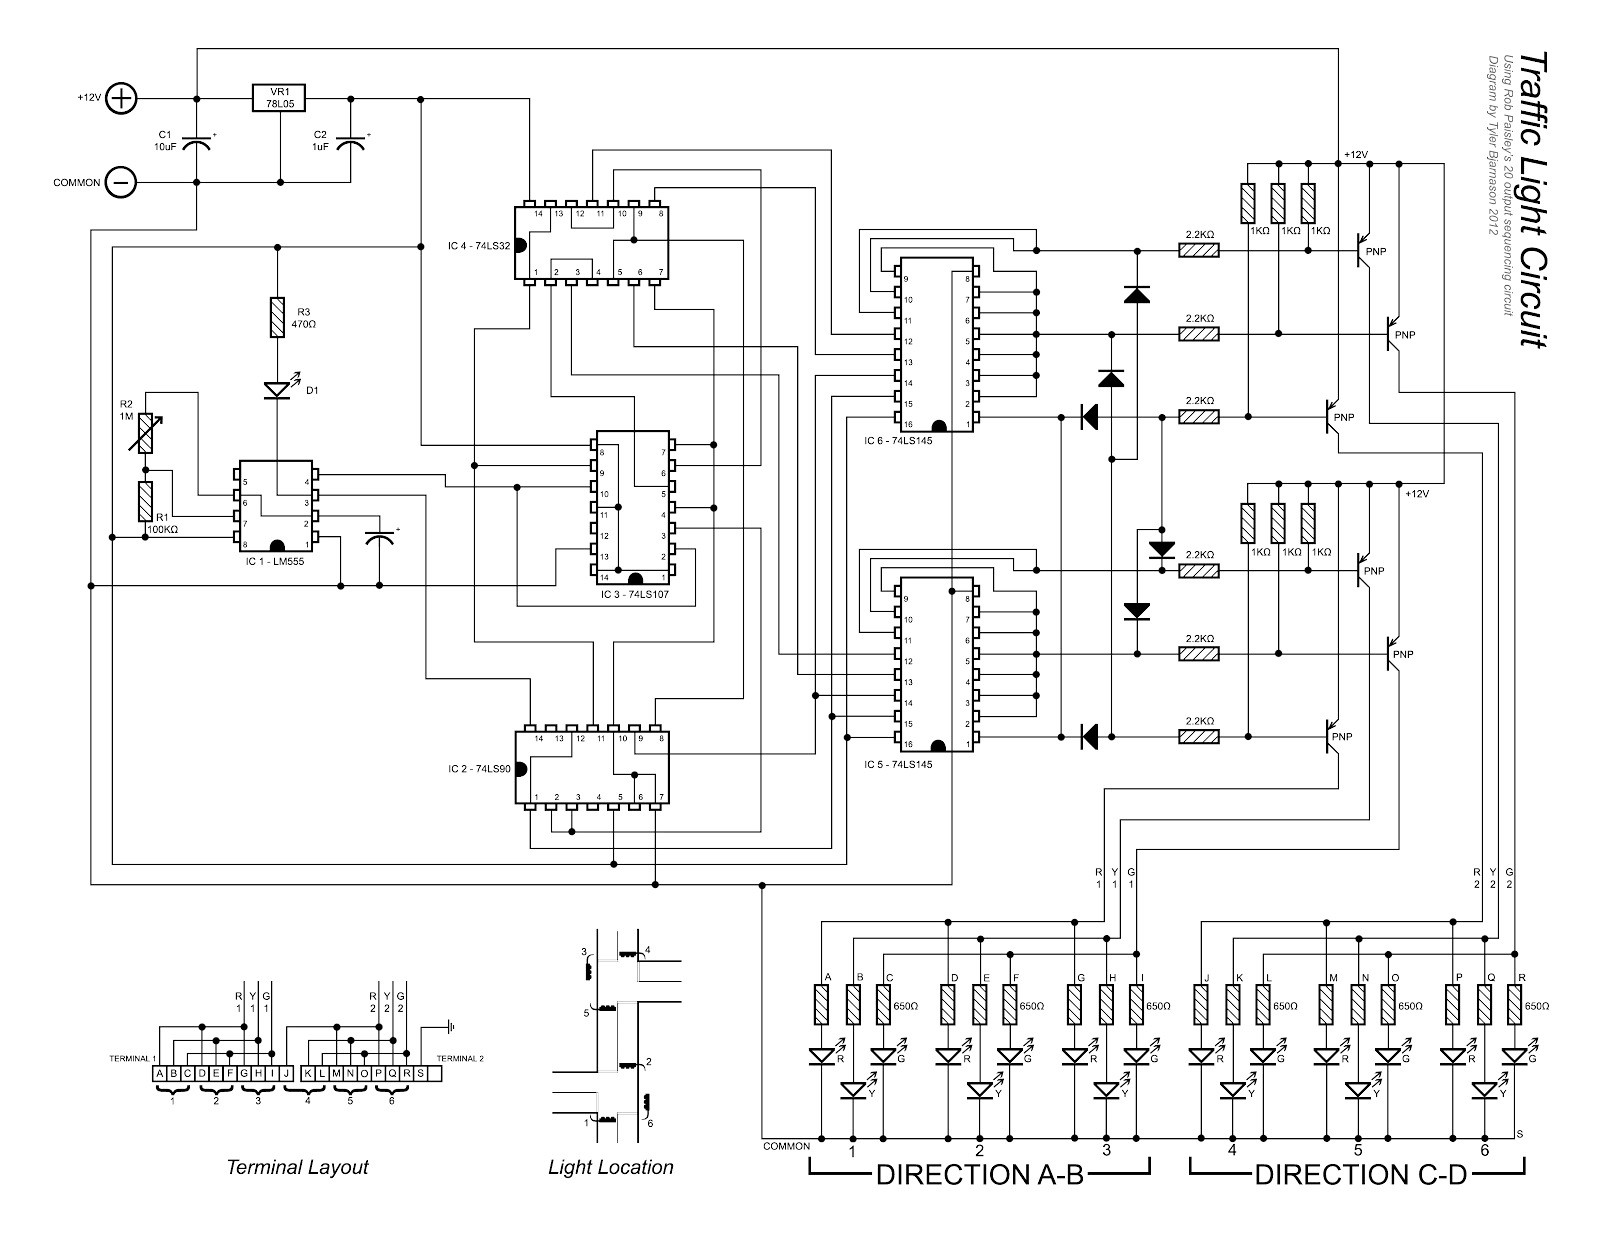 ponent Simple Traffic Light Circuit Diagram Led Chaser Tys Model Railroad Wiring Diagrams Design Trafficlightcontr